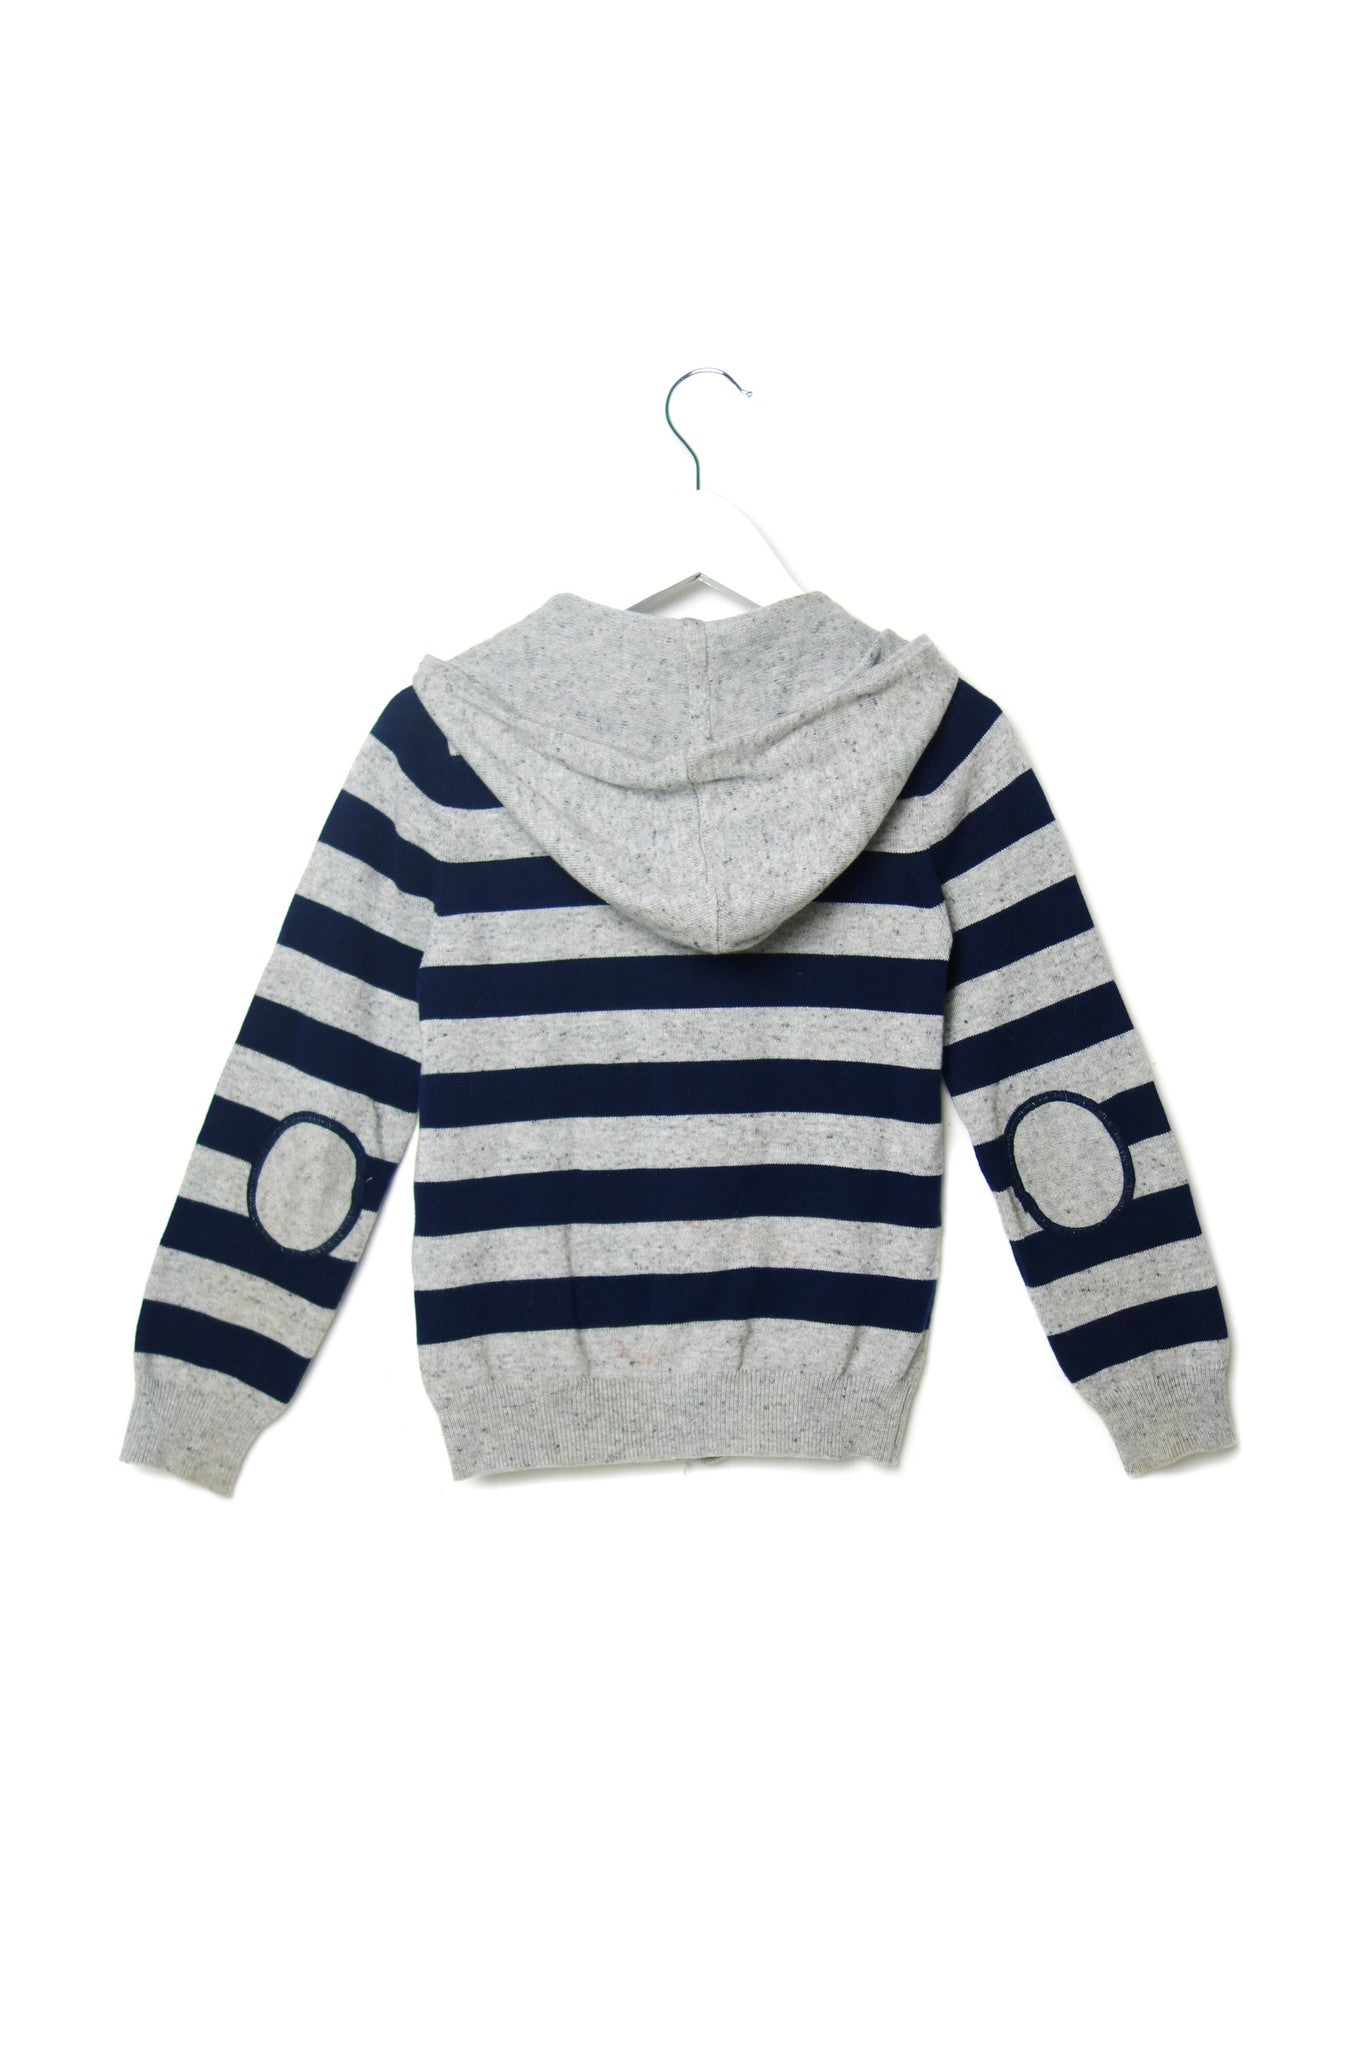 10002017 Seed Kids~Sweatshirt 4-5T at Retykle